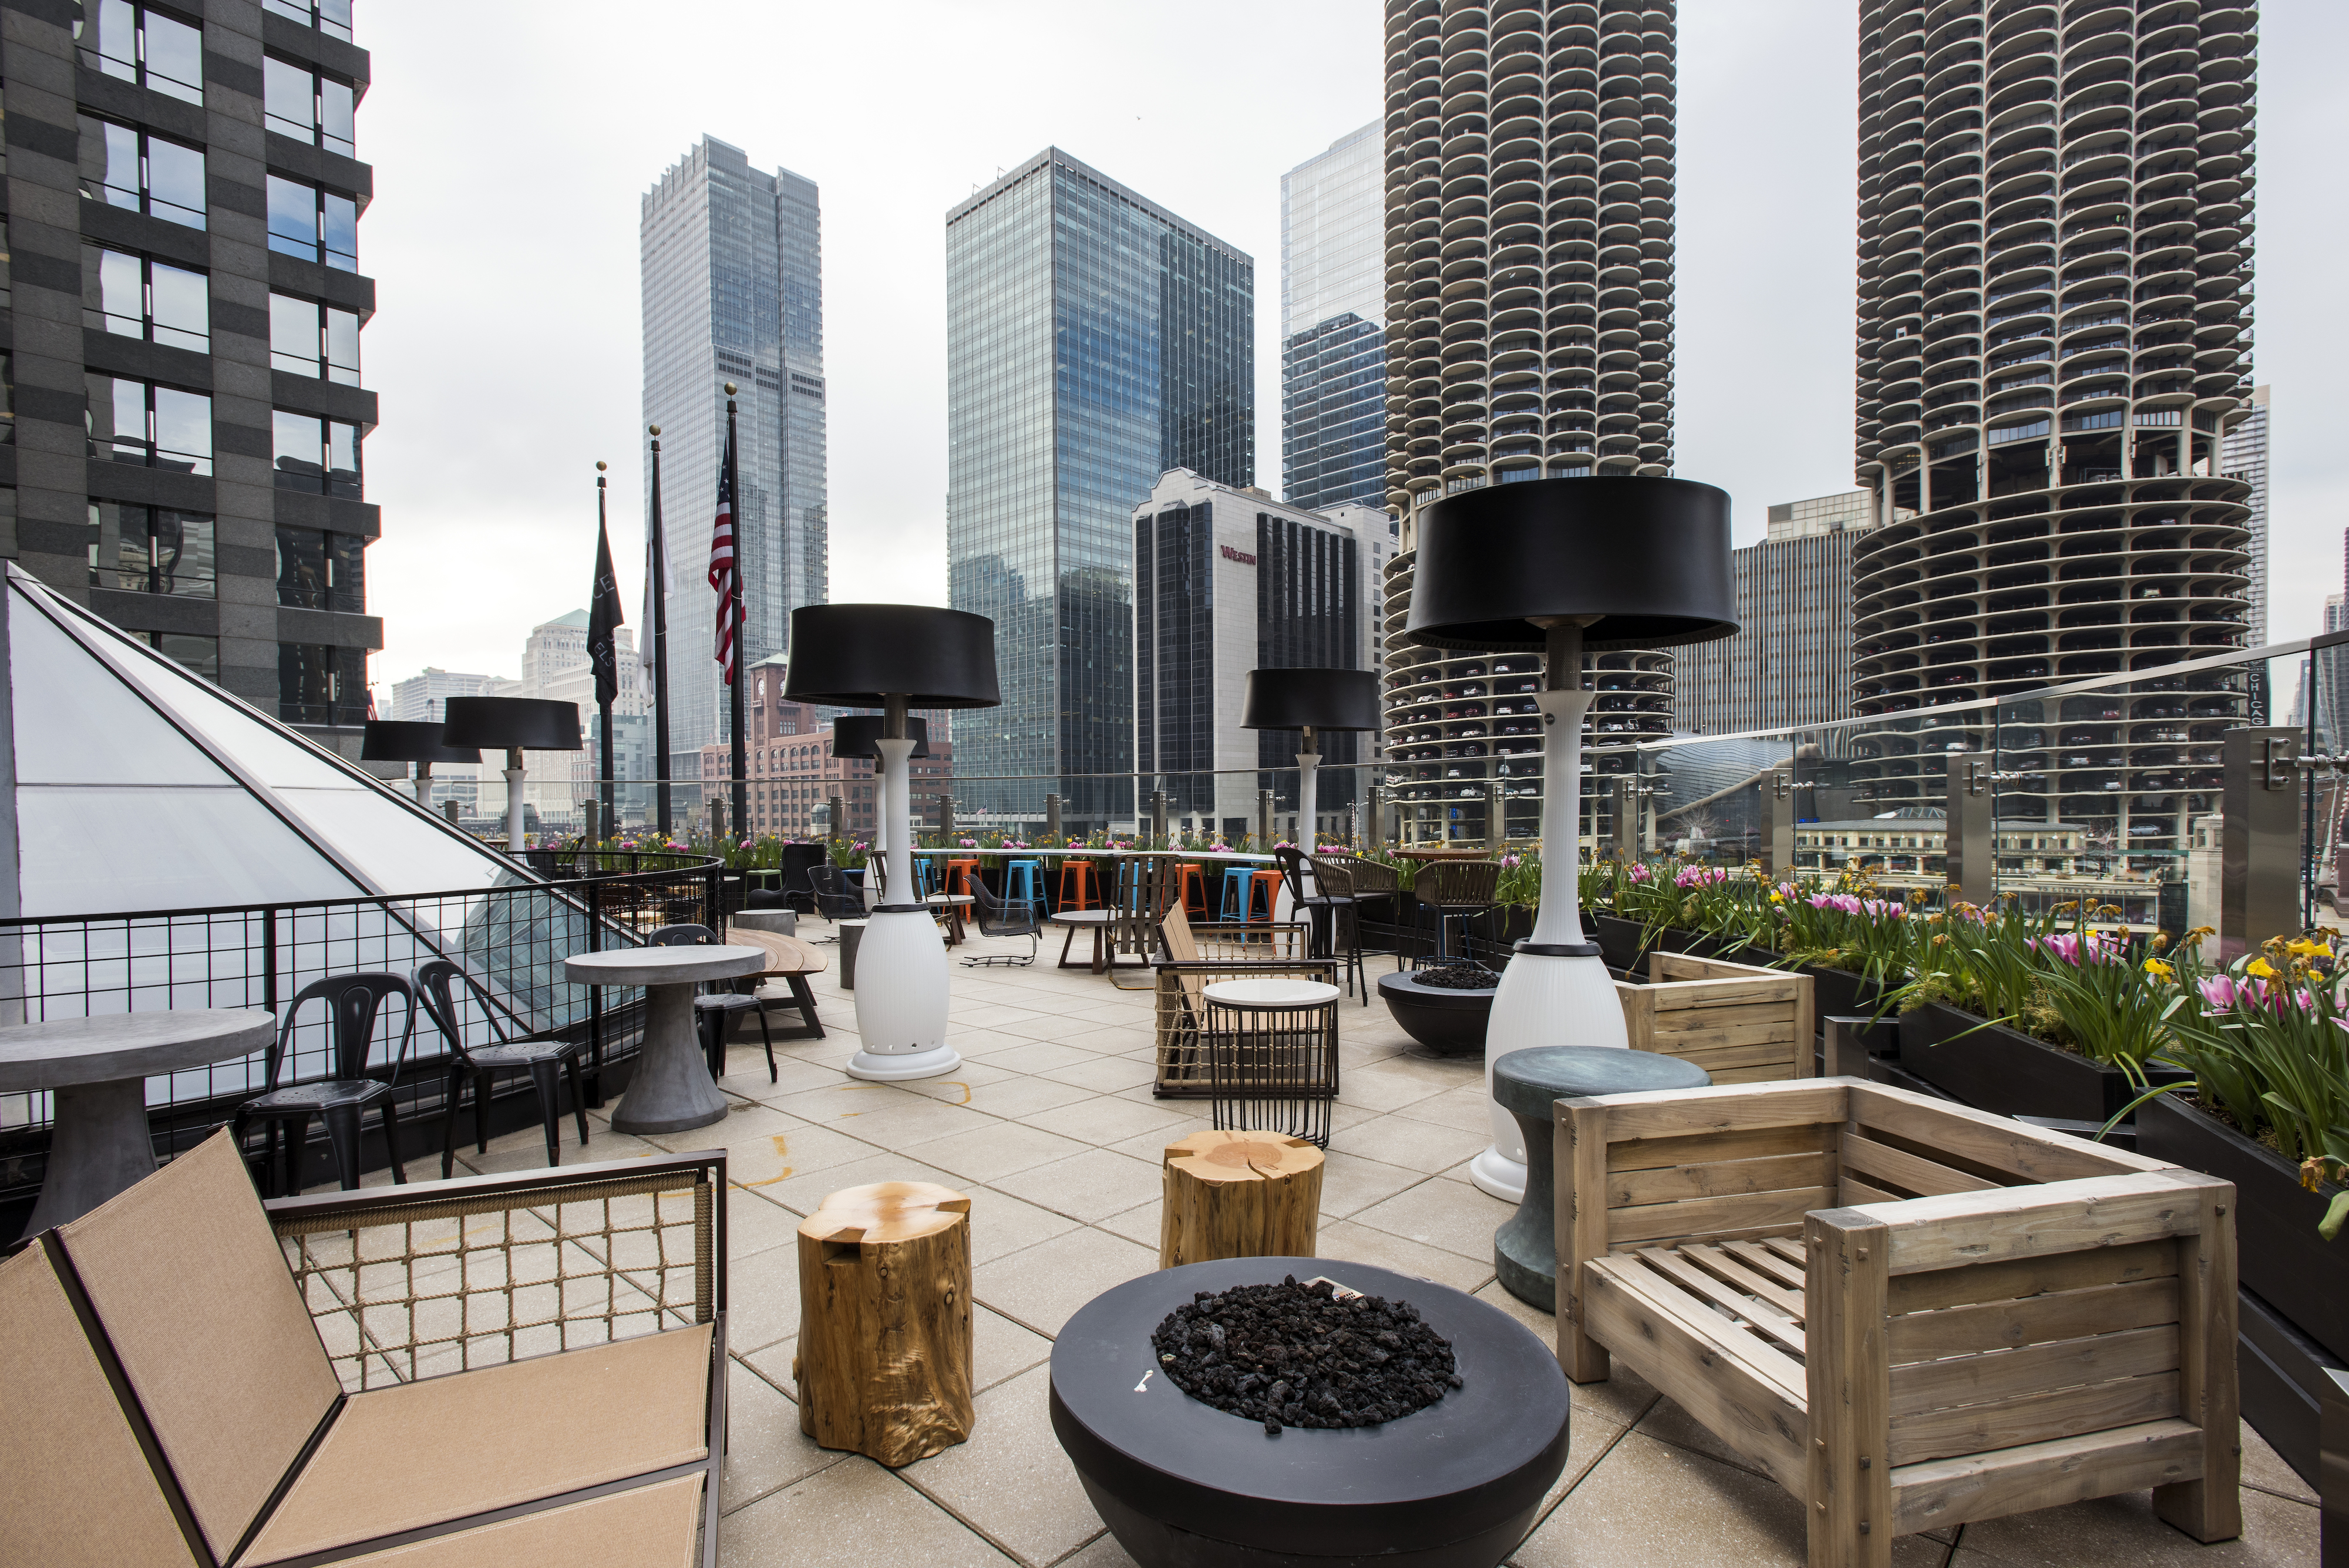 A Sneak Peek At The Renaissance Hotel S New Riverfront